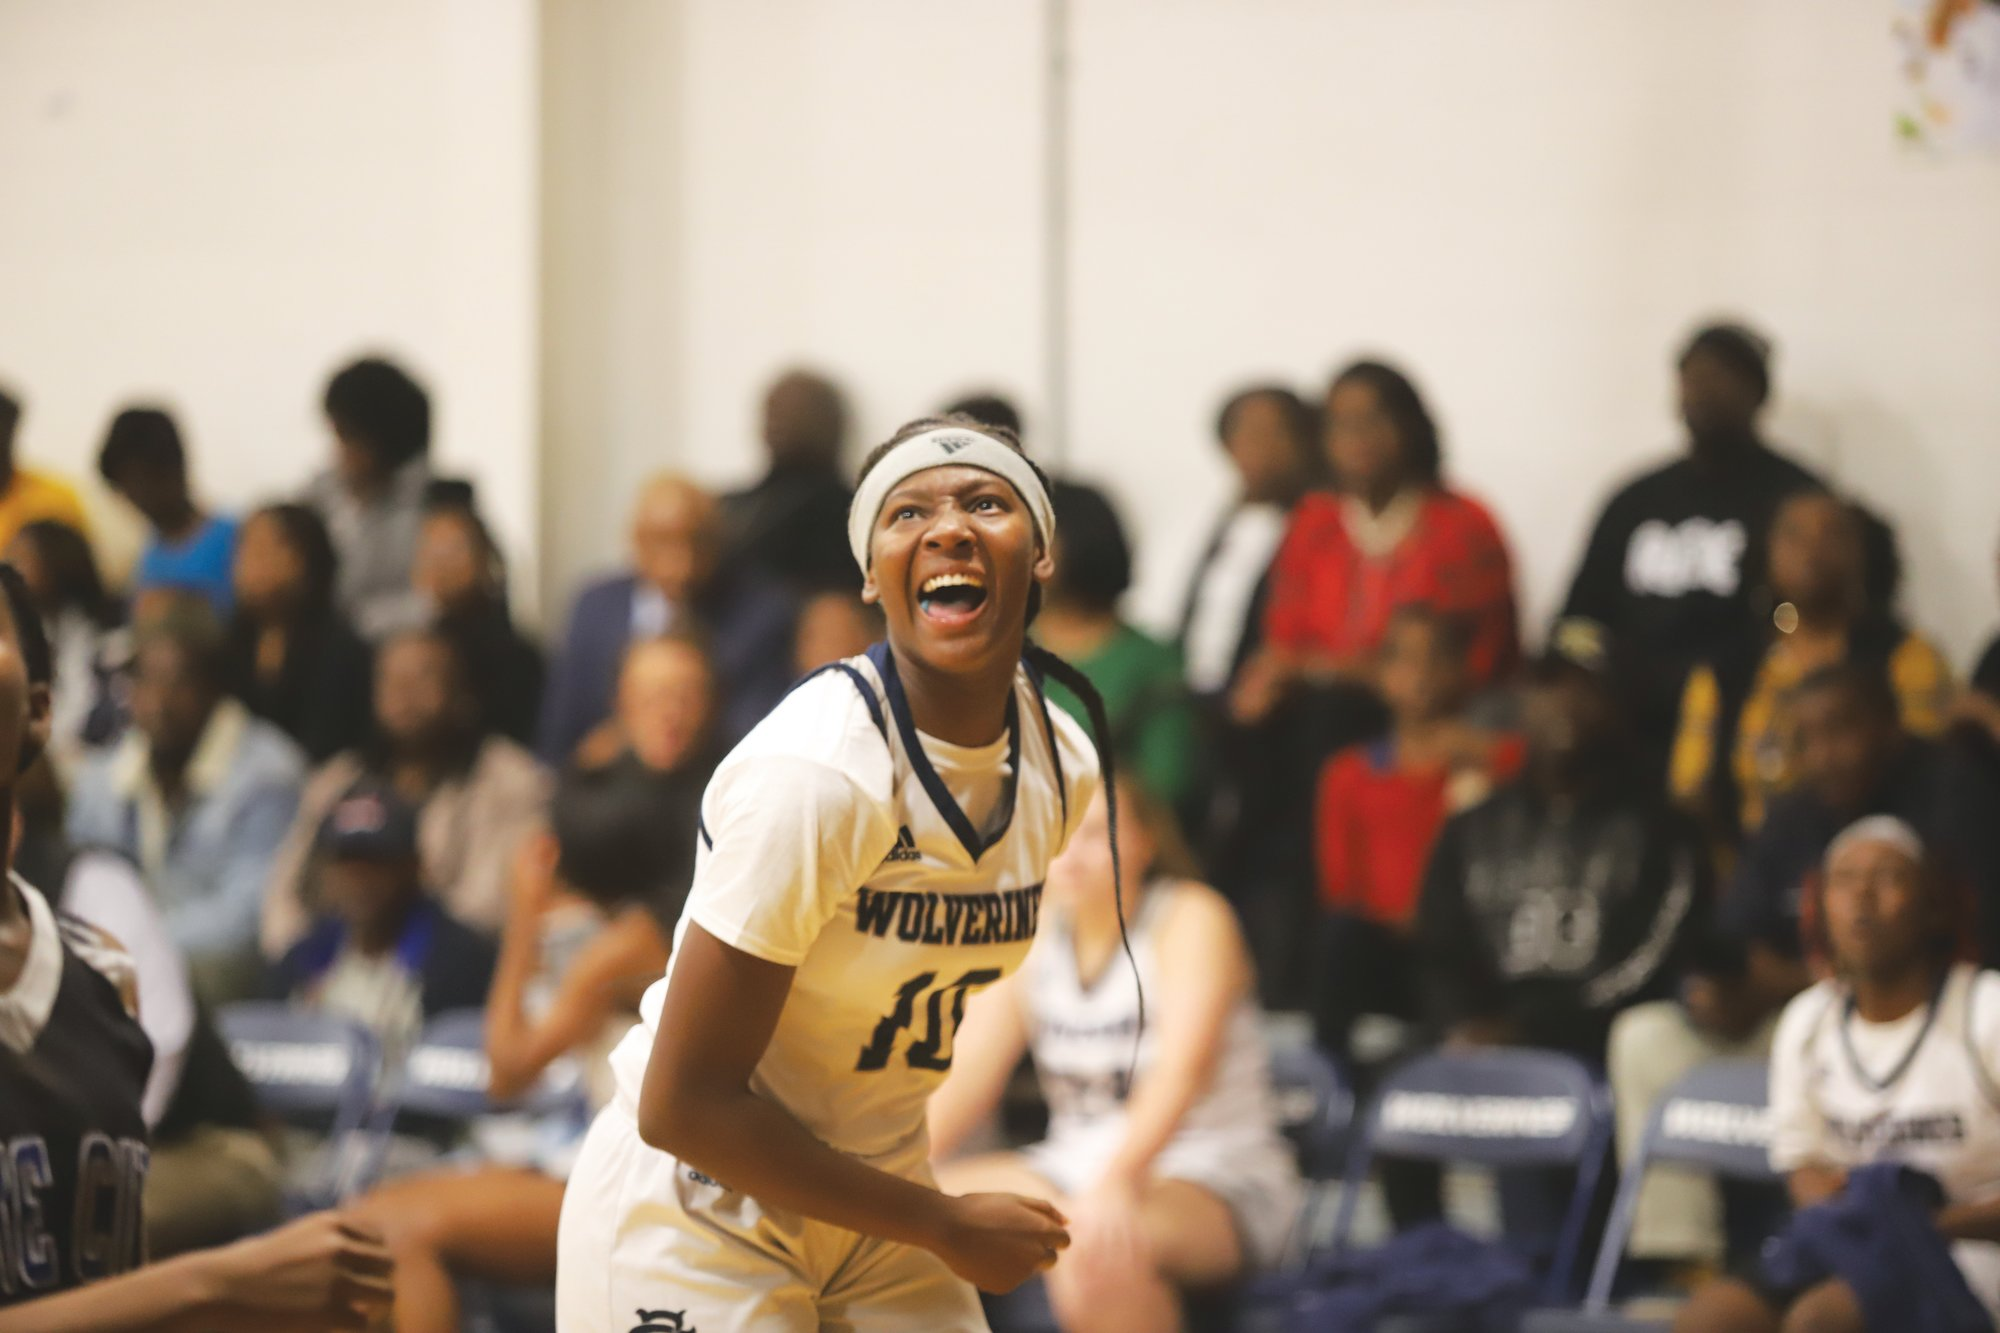 East Clarendon's Talaysia Cooper, who is just 14 points shy of 2,000 for her career, and the Lady Wolverines will host Kingstree on Tuesday for a region matchup.